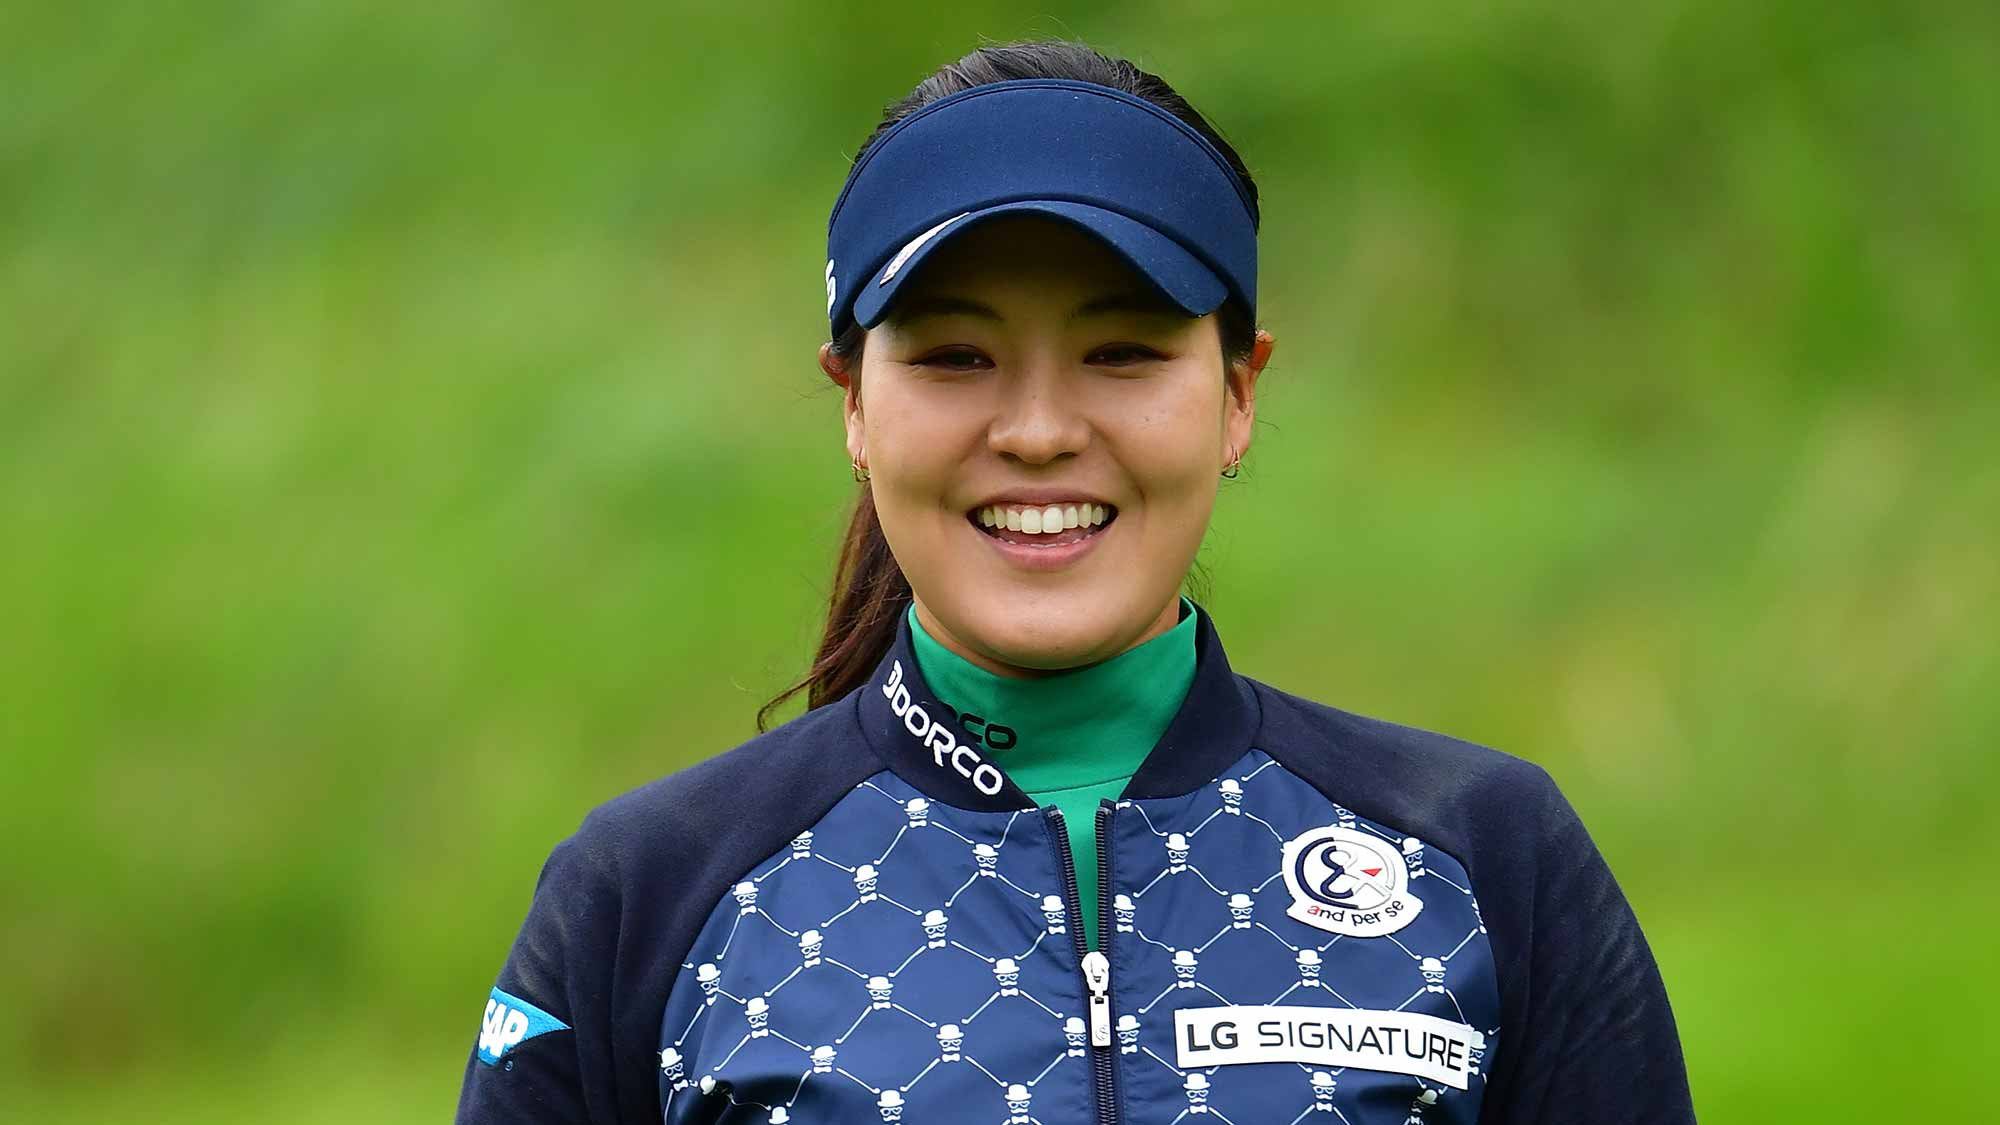 Defending Champion In Gee Chun of South Korea waves during the pro-am prior to the start of the Evian Championship at Evian Resort Golf Club